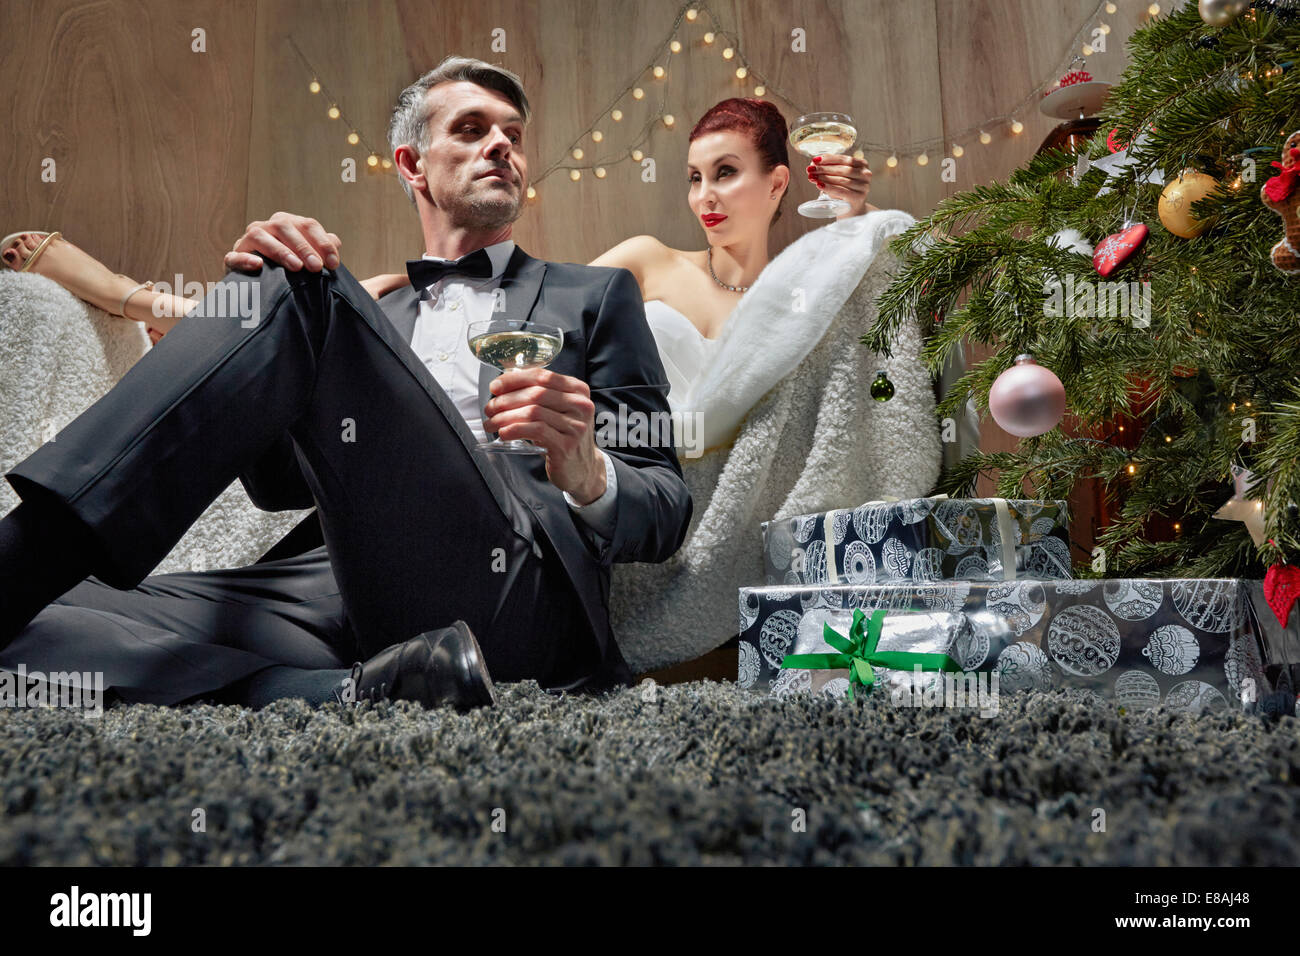 Husband and wife lounging by Christmas tree - Stock Image